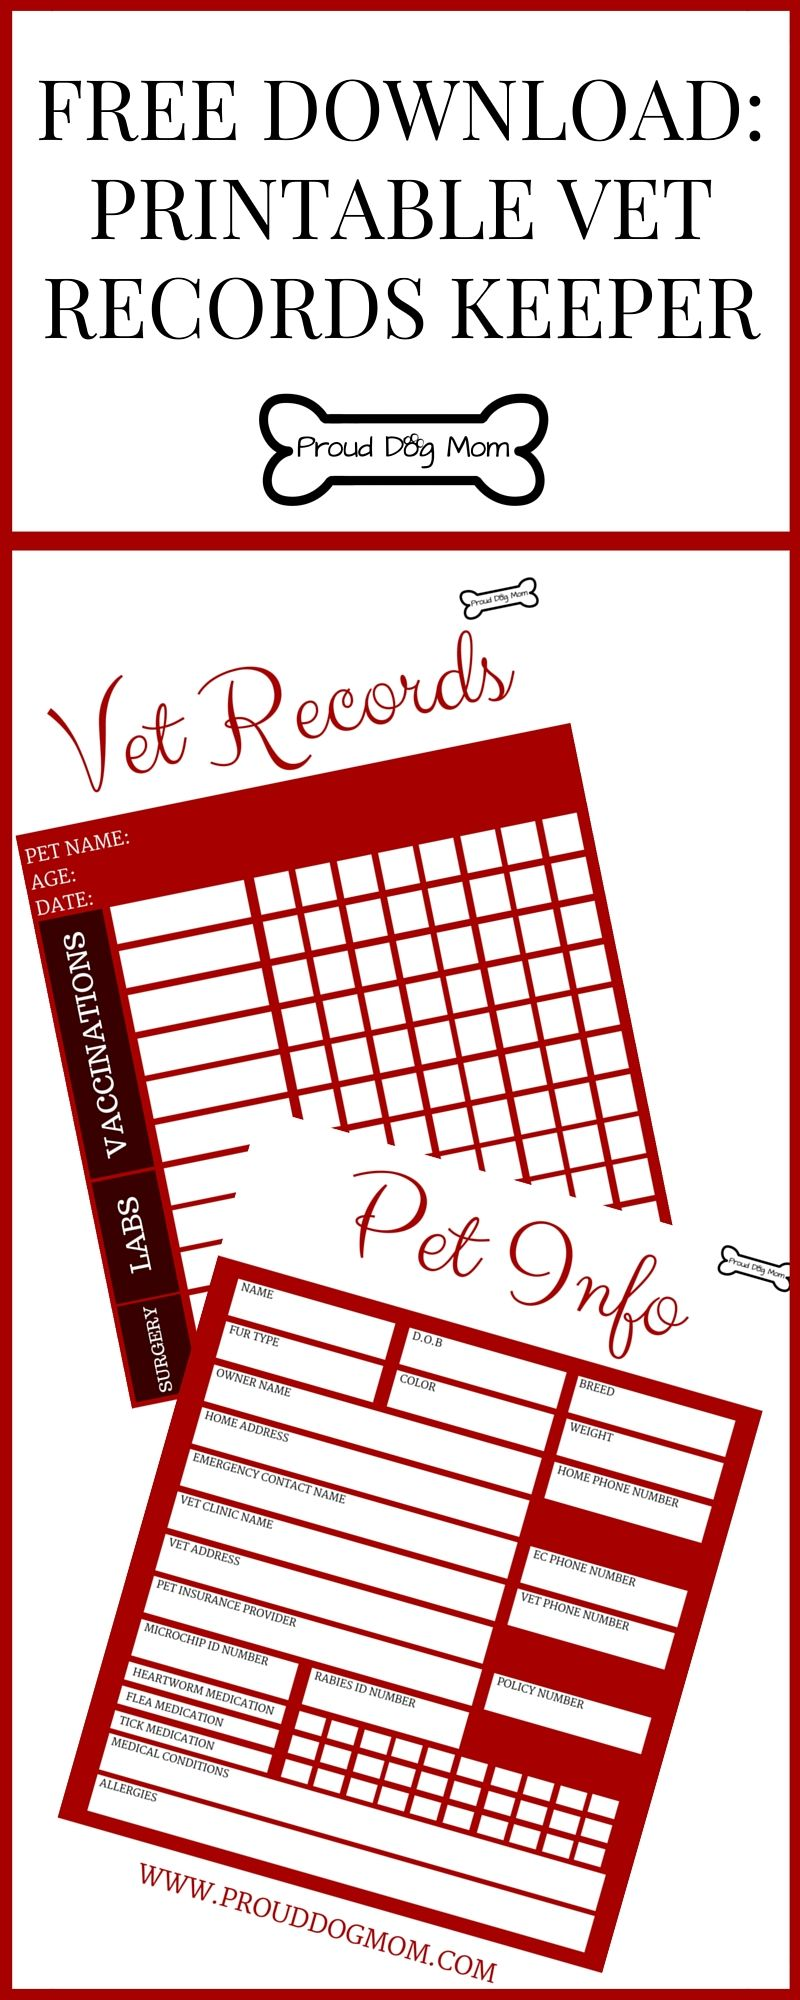 graphic about Dog Health Records Printable identify Absolutely free Obtain: Printable Vet Documents Keeper Animals Puppy